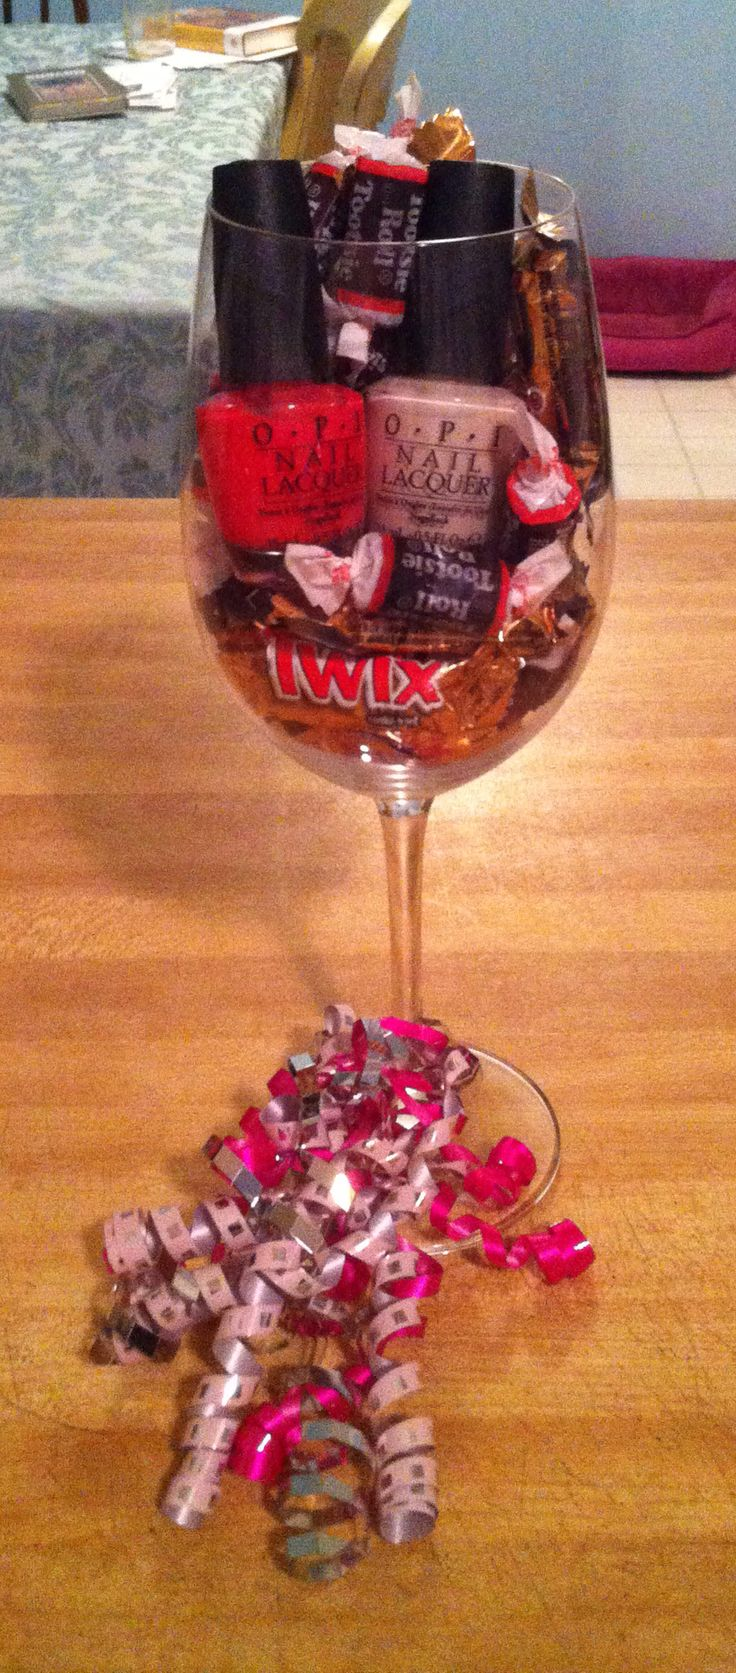 I made this super simple & affordable gift for my friend. It includes her favorite candy, 2 nail polishes, and a wine glass for her to keep! Contact info: Amyc167@aim.com to place an order for you or a loved one! Etsy.com---store name: Lovetew